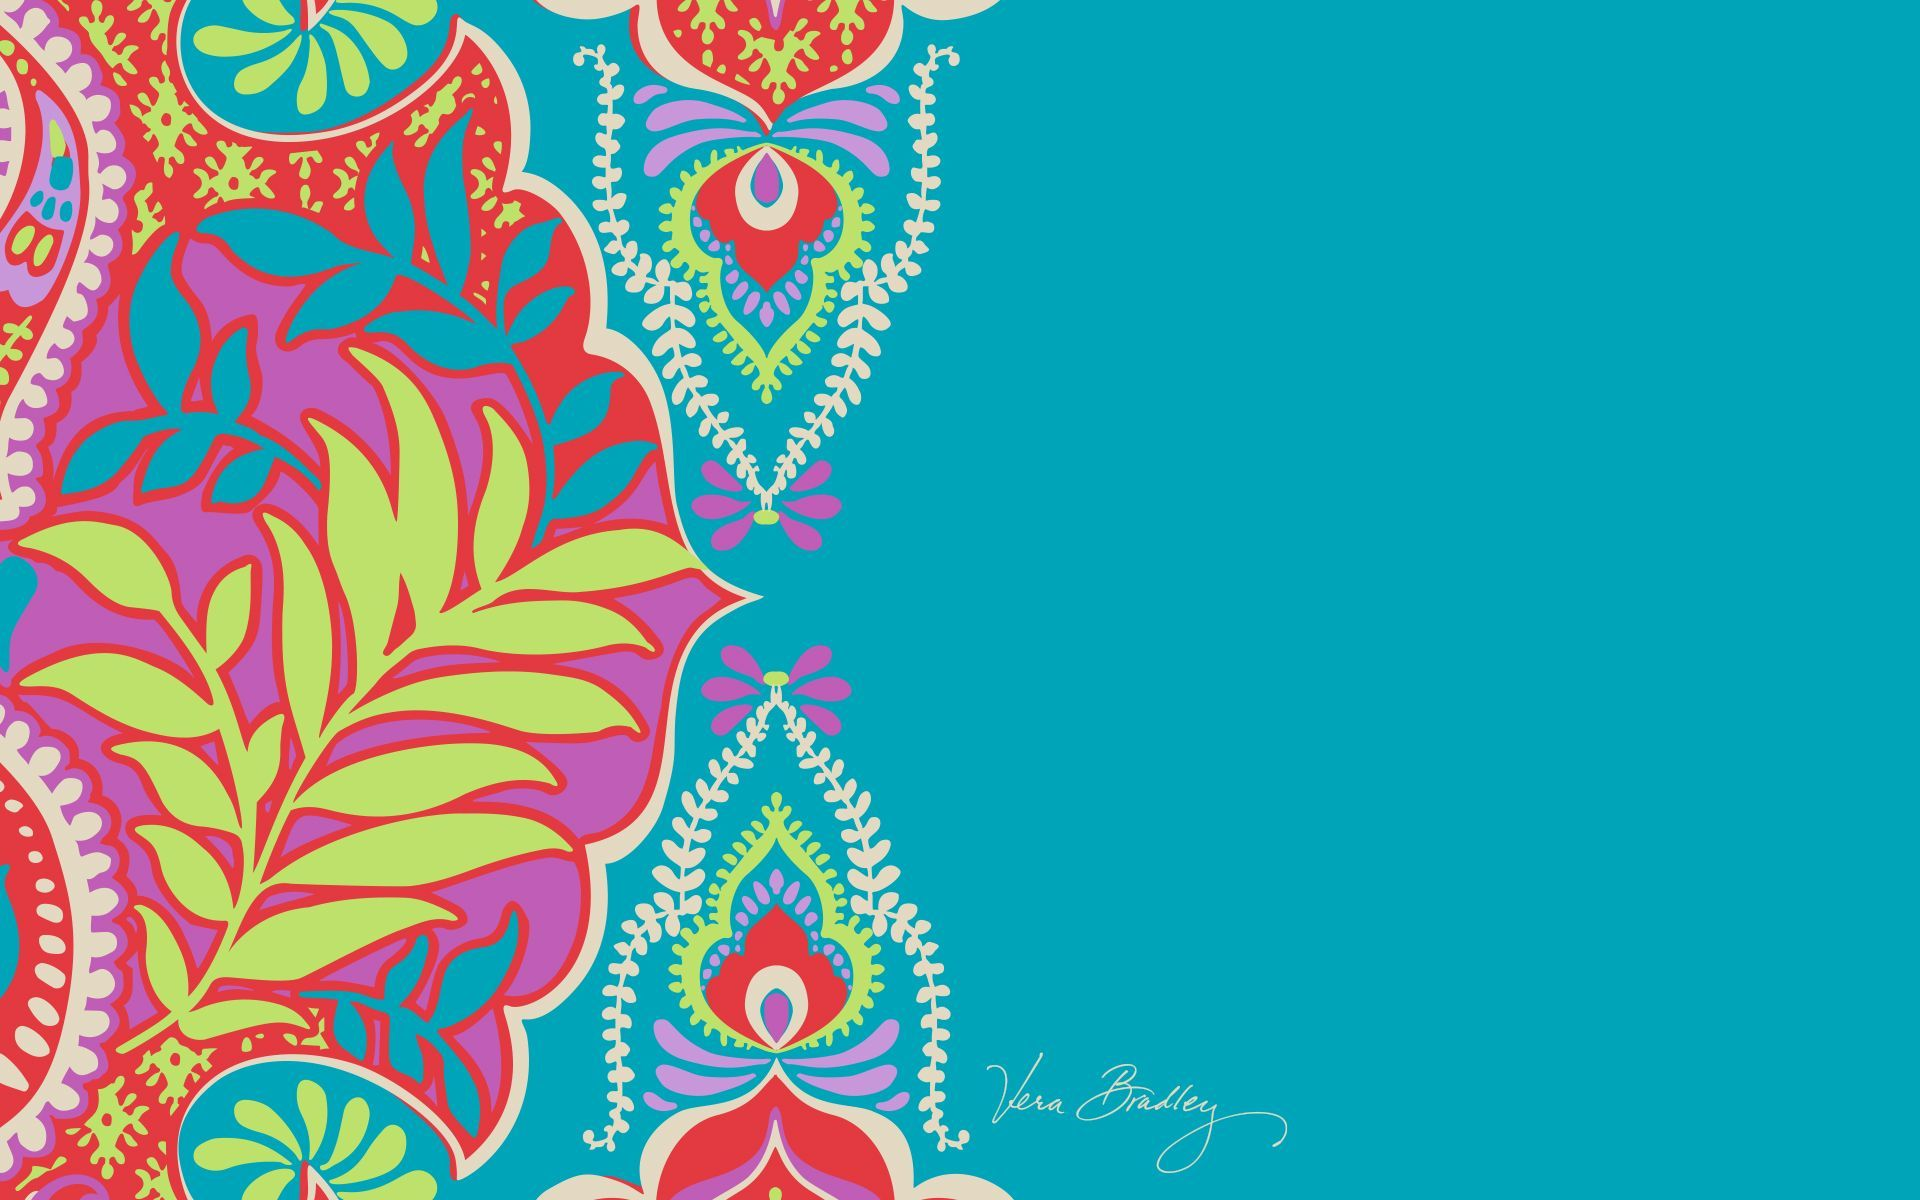 Vera Bradley Paisley In Paradise Desktop Wallpaper Crafts